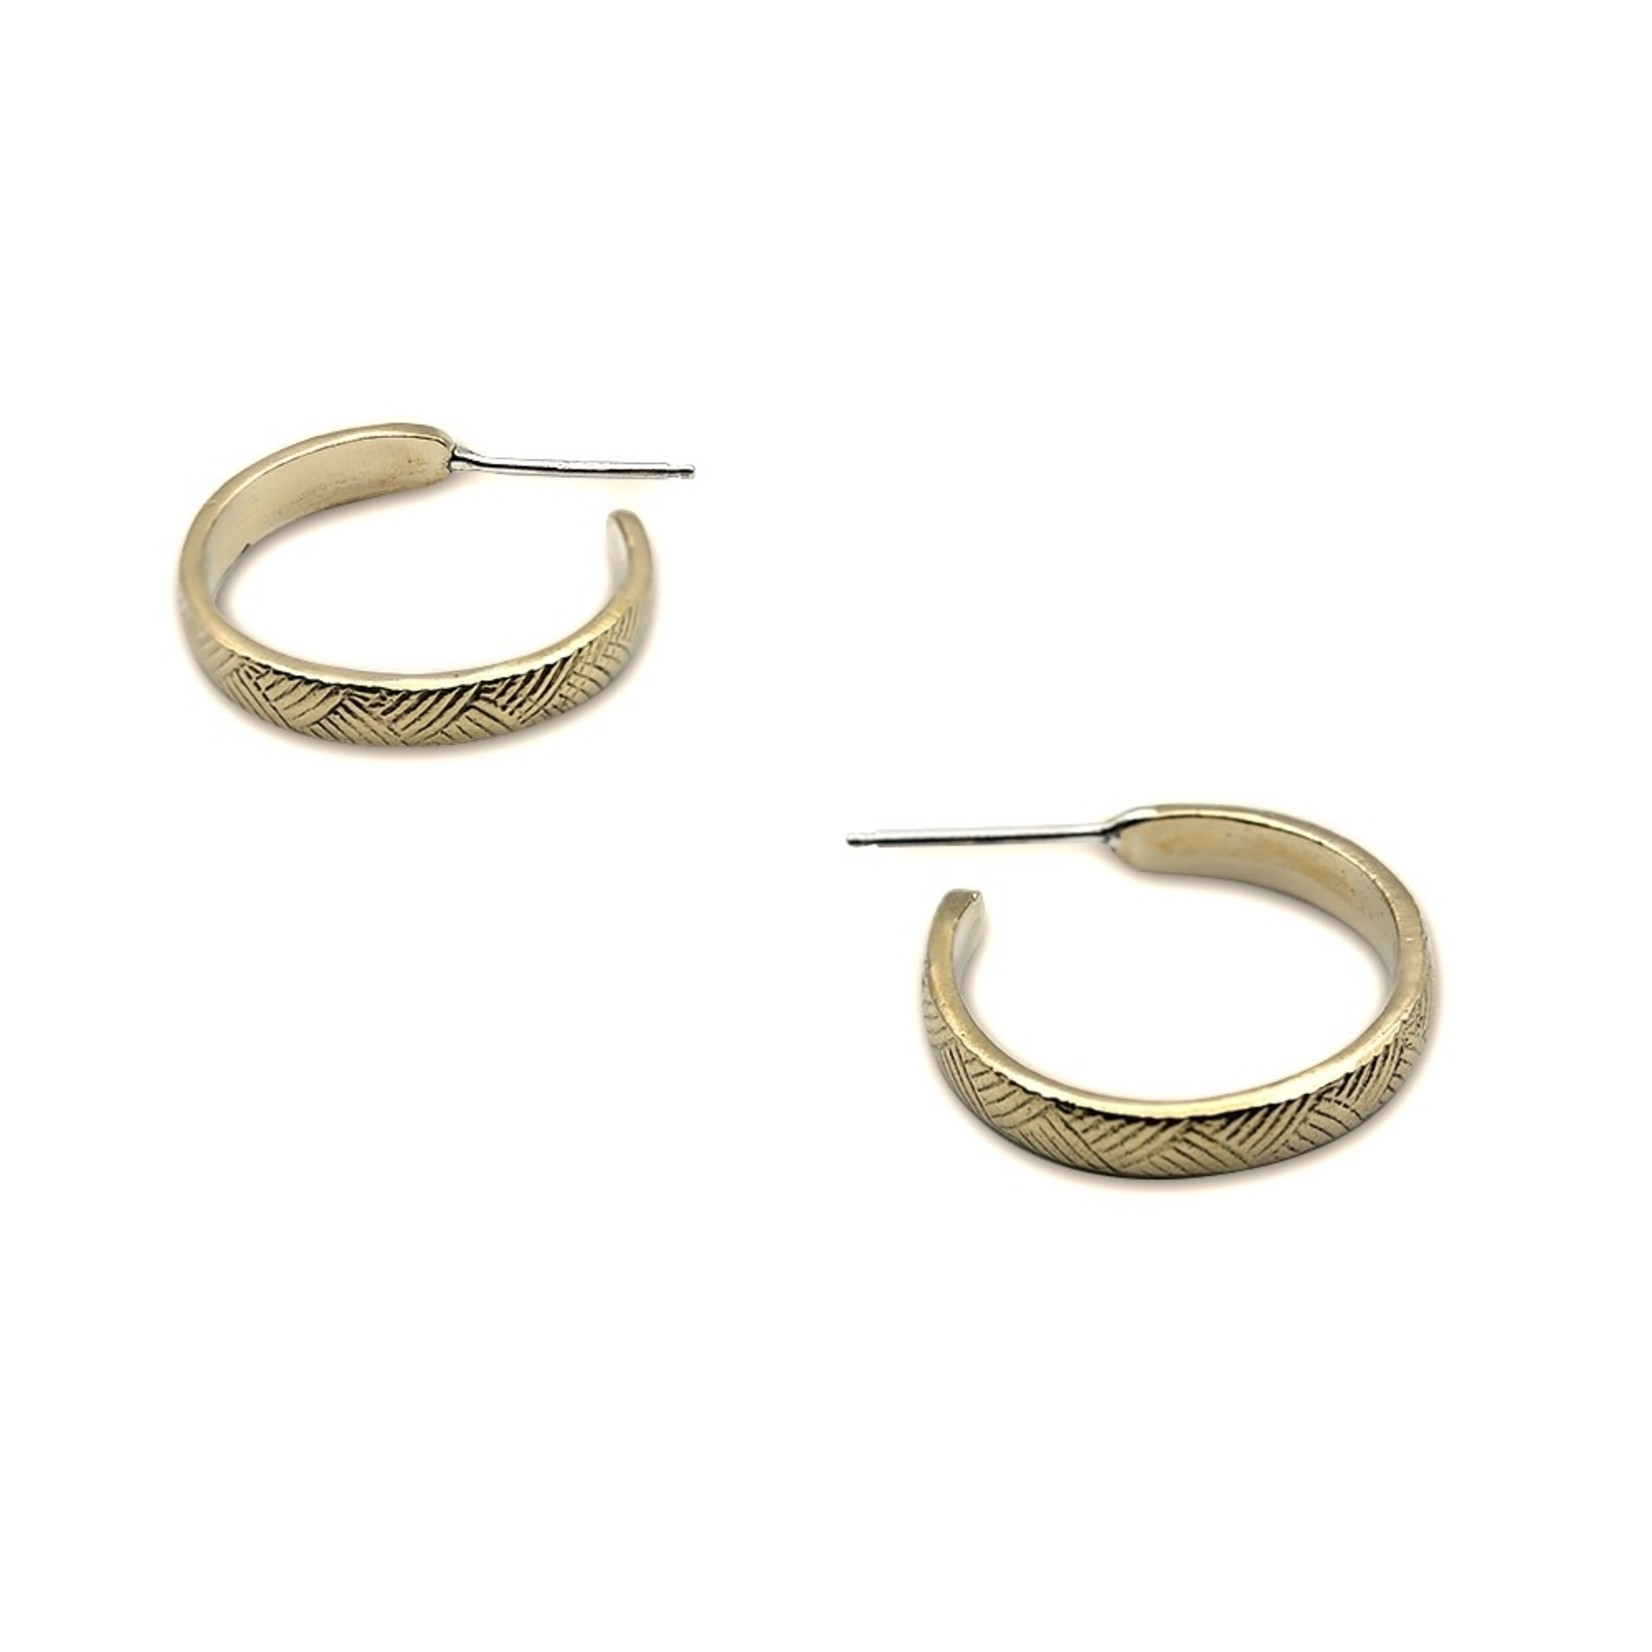 Mana Made Jewelry Mana Made Medium Vintage Lines Hoop Earrings in Brass